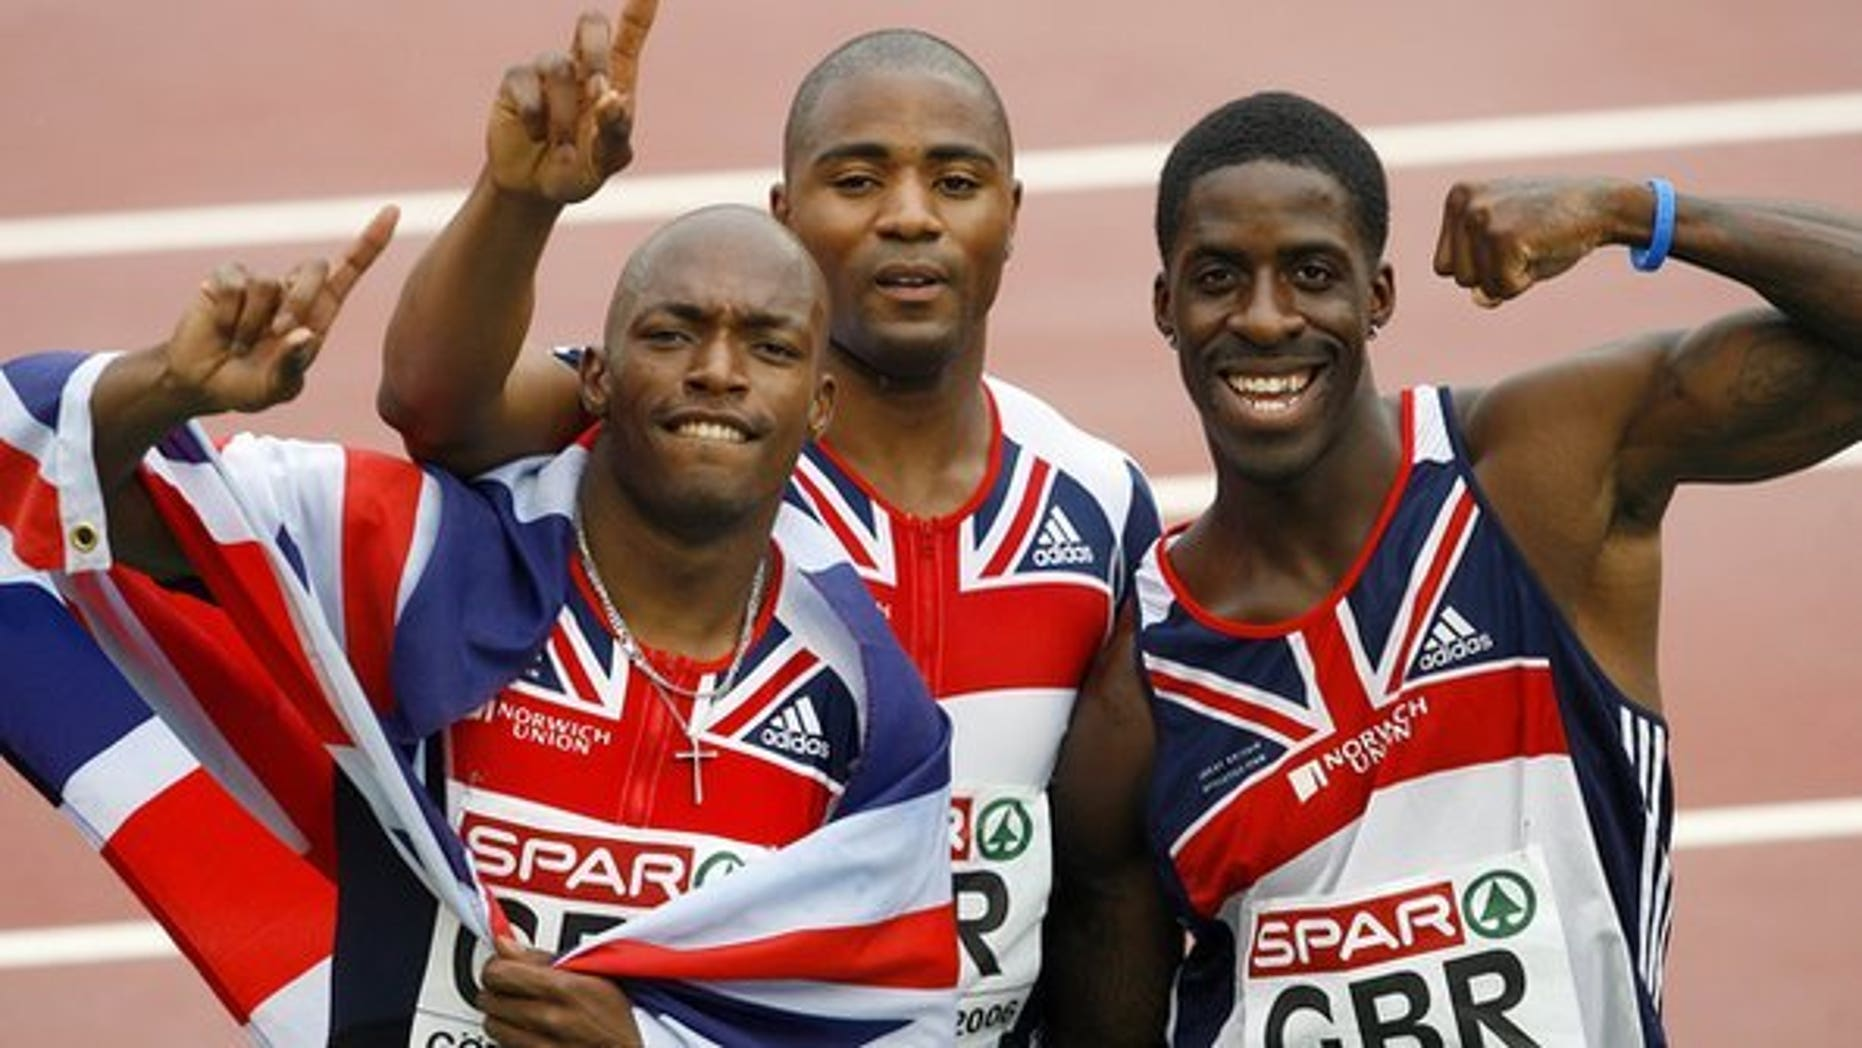 Dwain Chambers (right) could still compete at the London 2012 Olympics after his drugs ban.